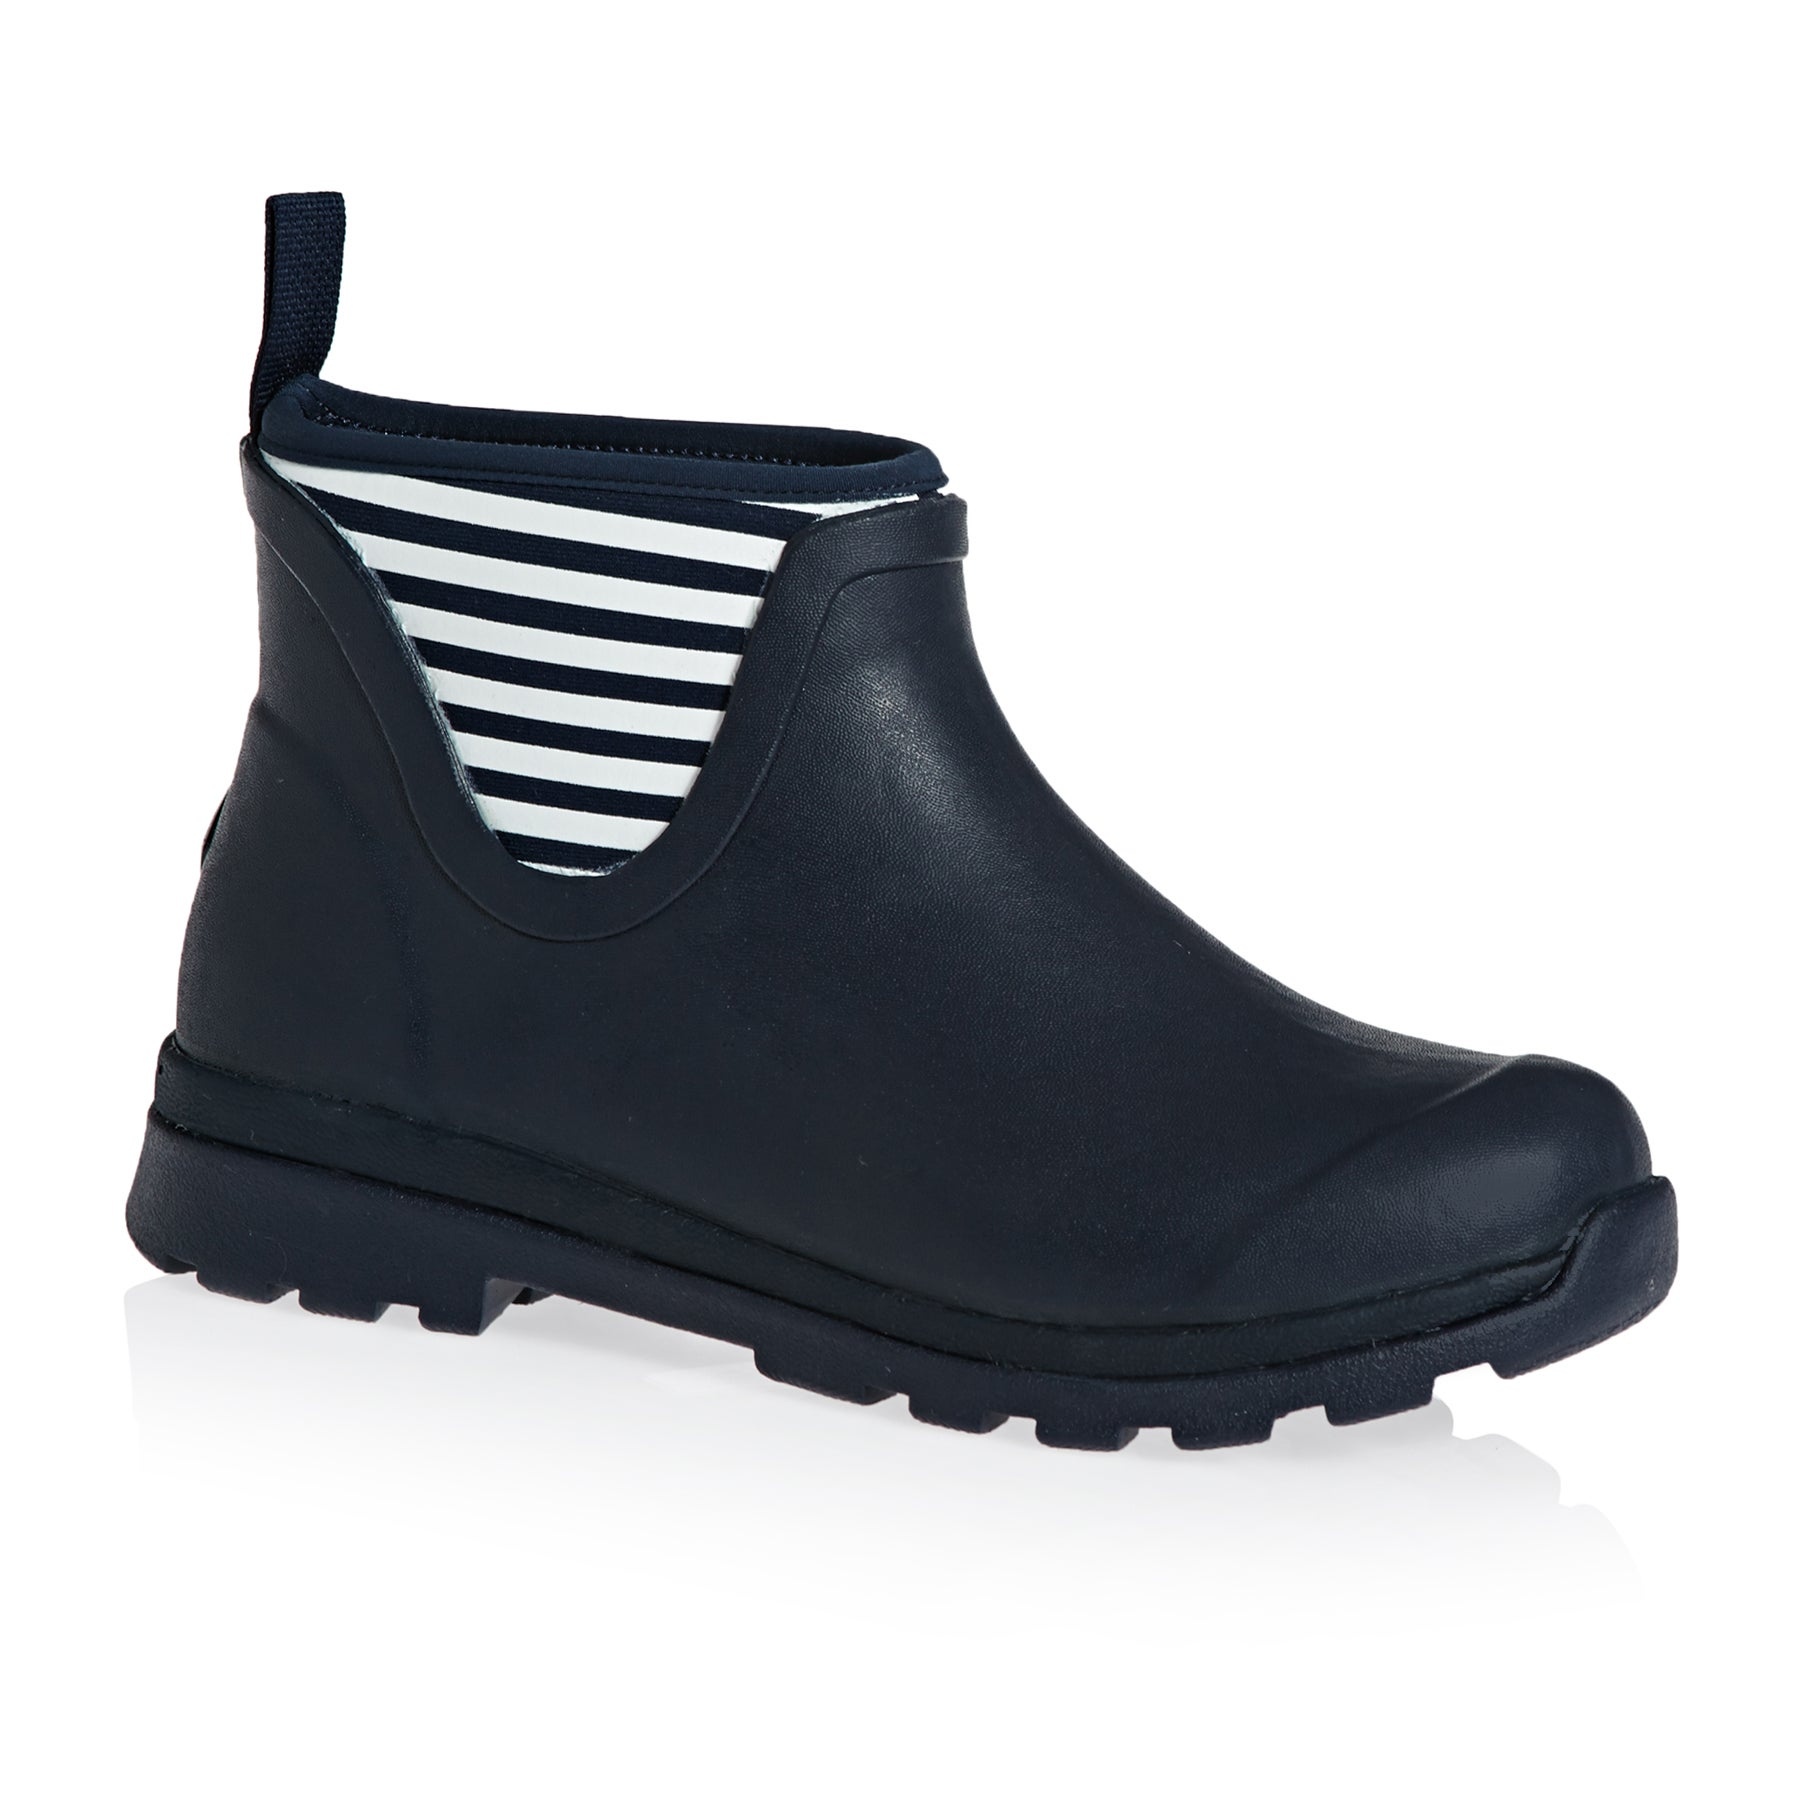 Botas de lluvia Mujer Muck Boots Cambridge Ankle - Navy White